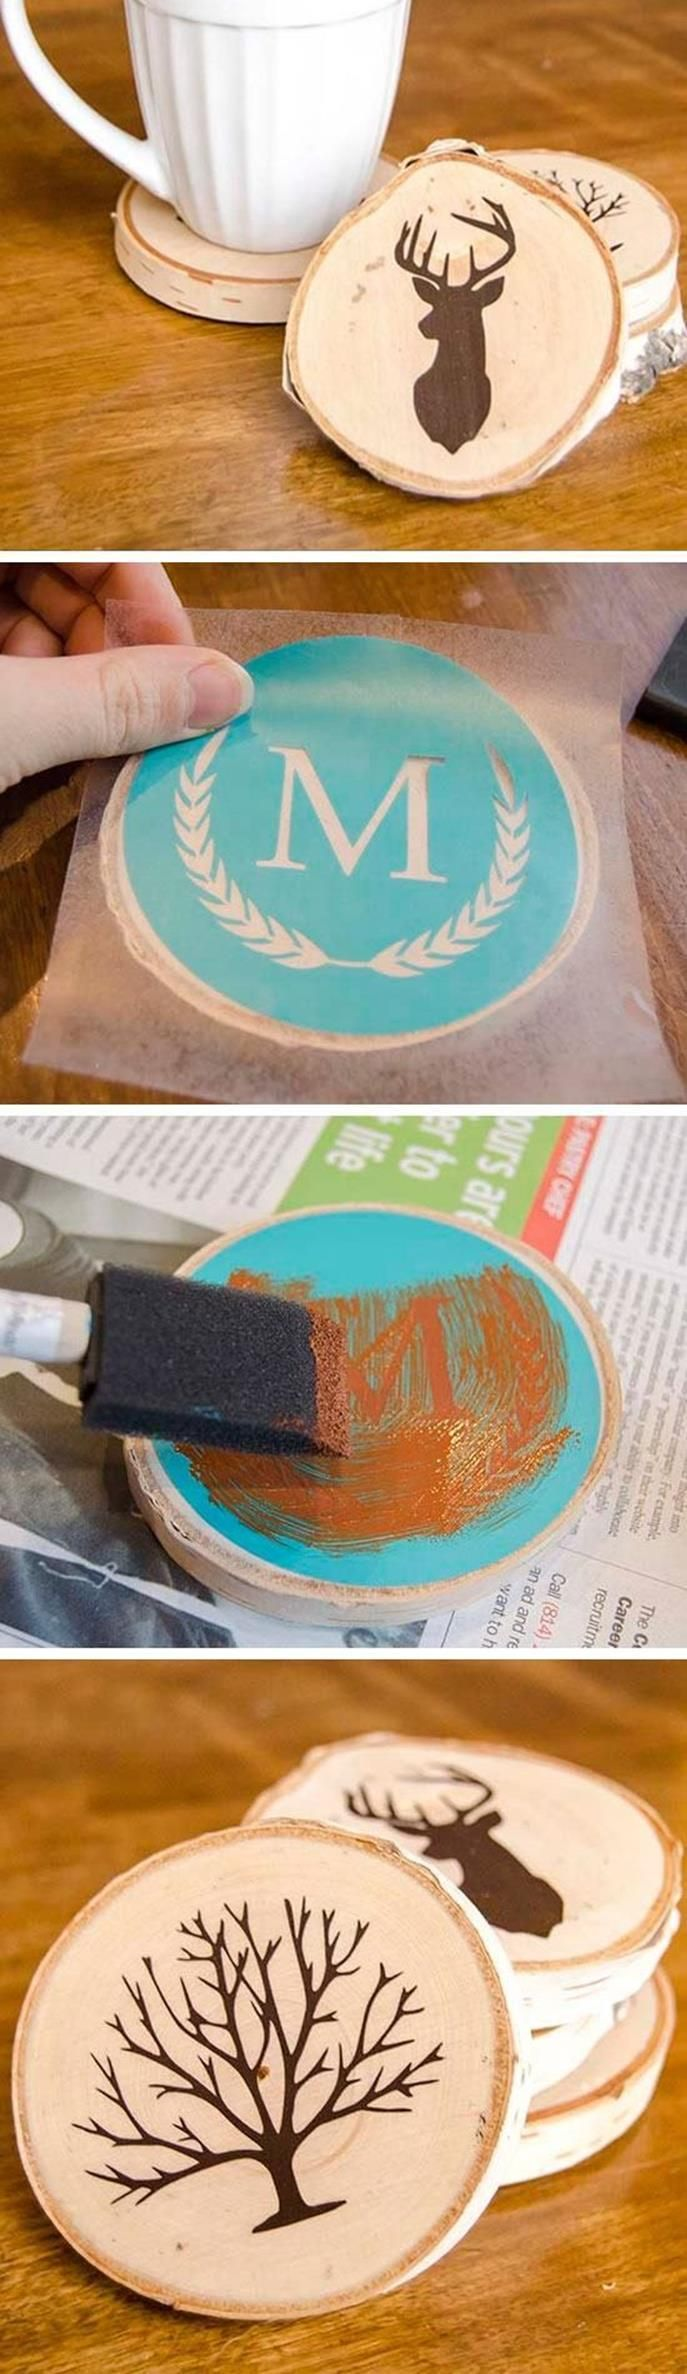 37 Easy and Cheap Creative DIY Christmas Gifts Ideas